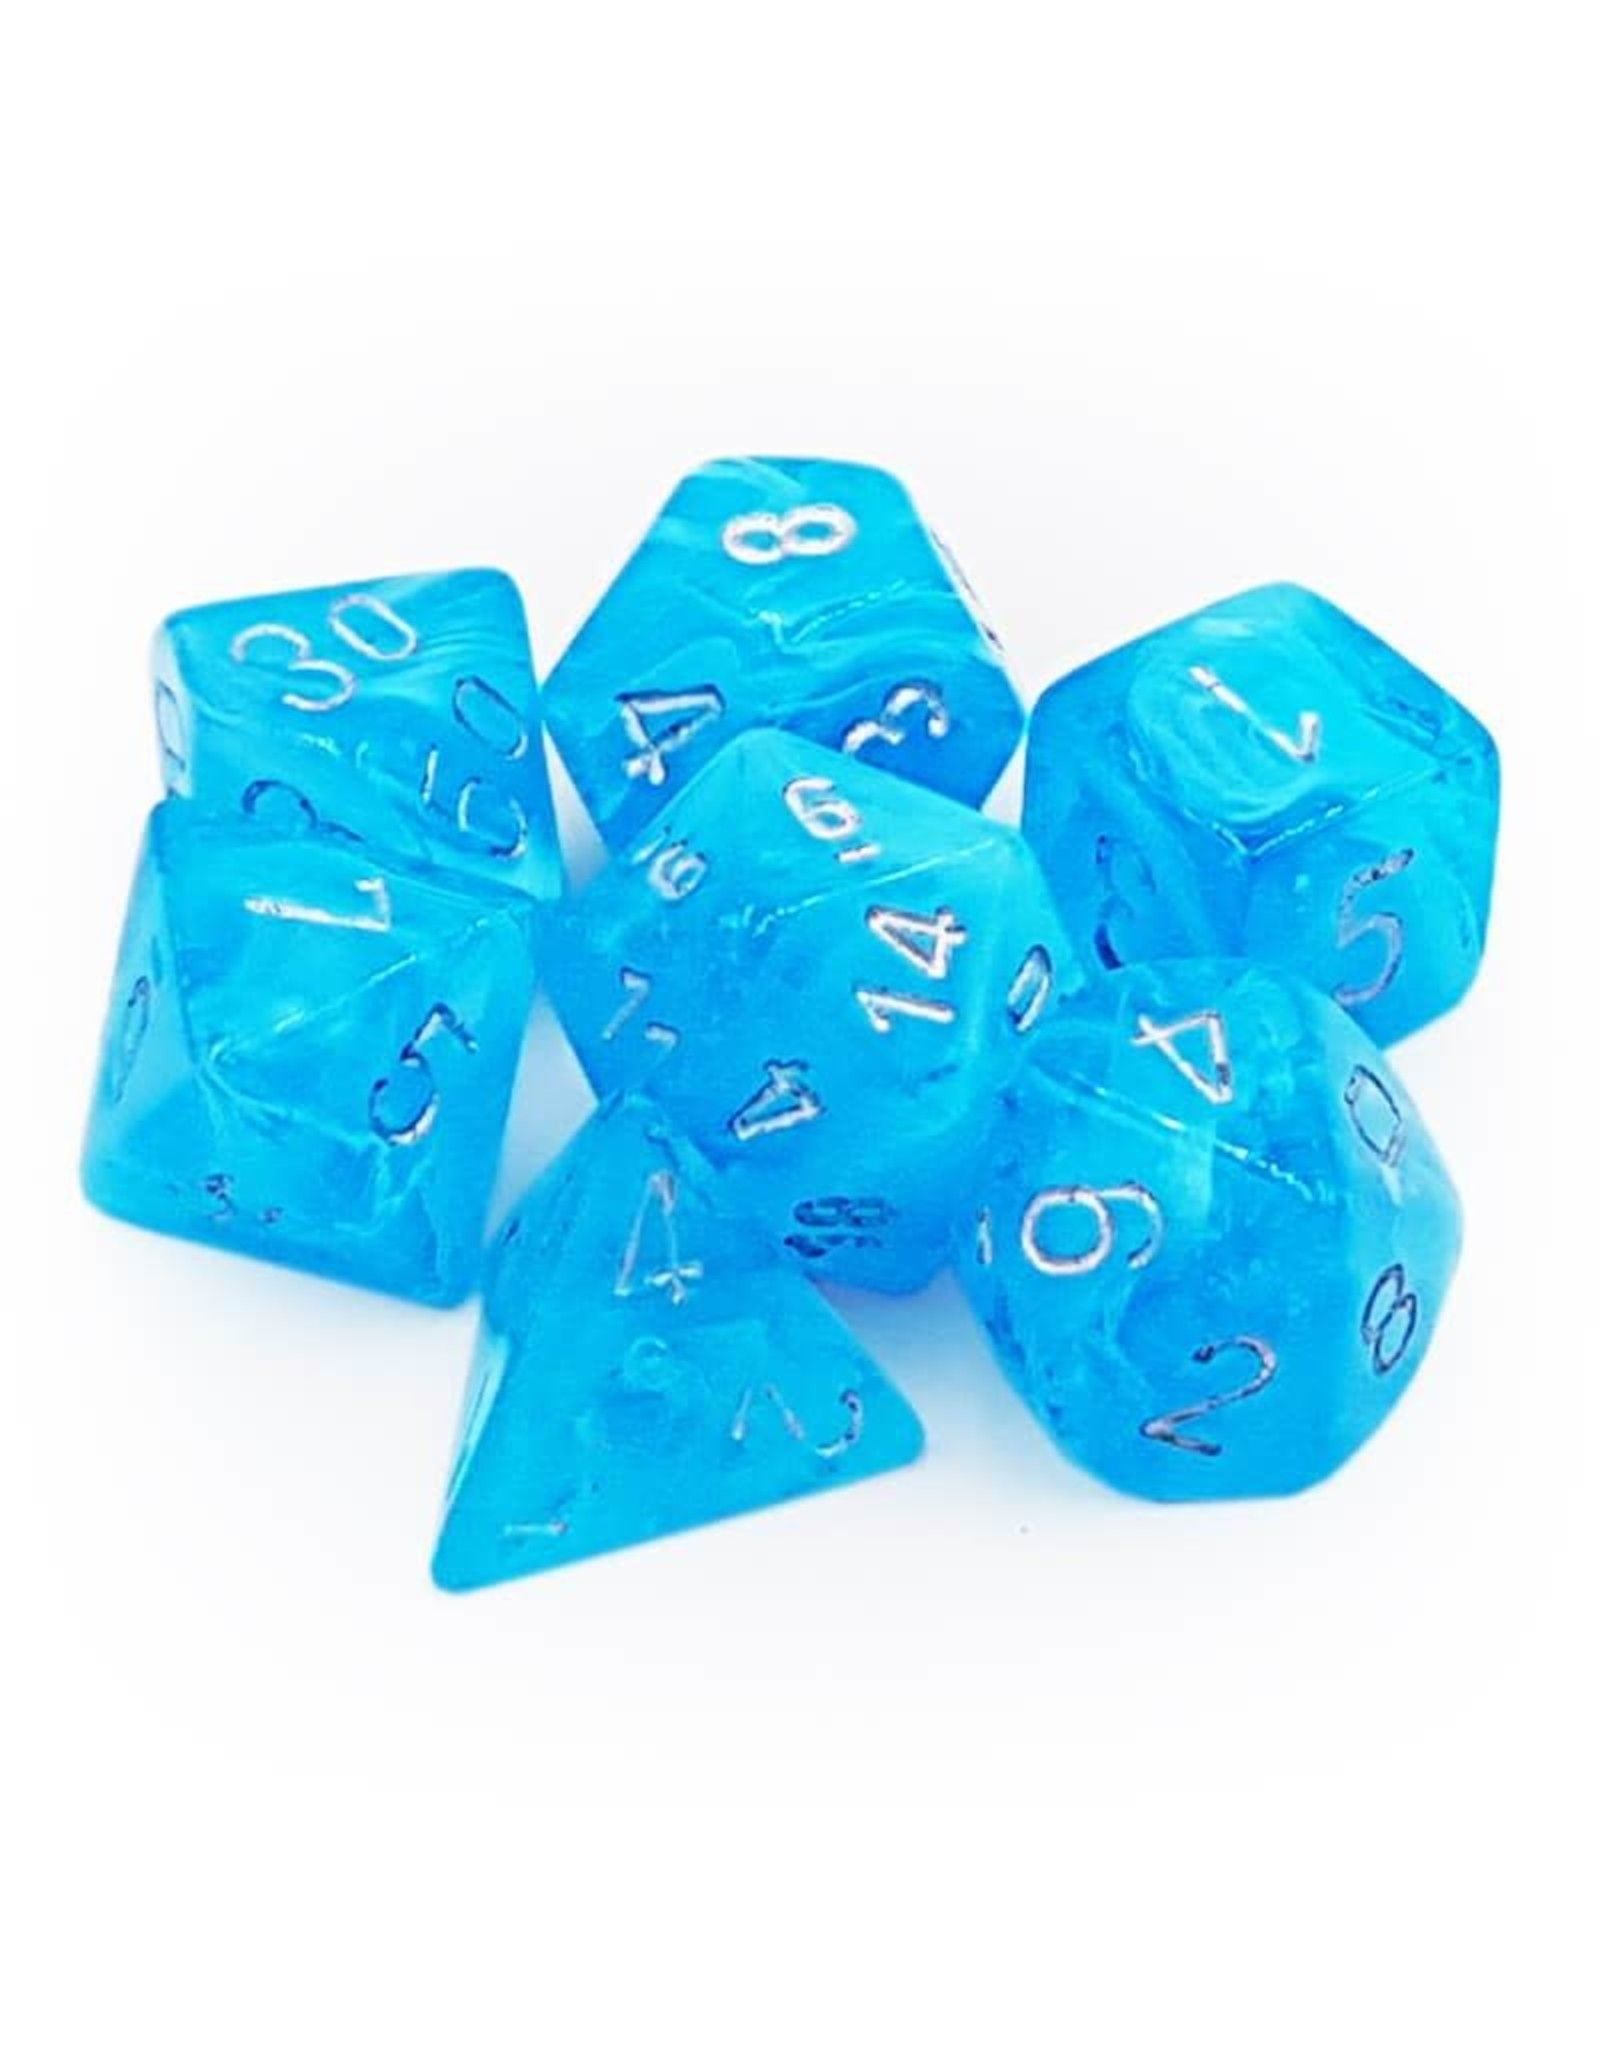 Chessex Dice: 7-Set  Luminary Sky Blue with Silver Numbers - Glow in the Dark (Chessex)